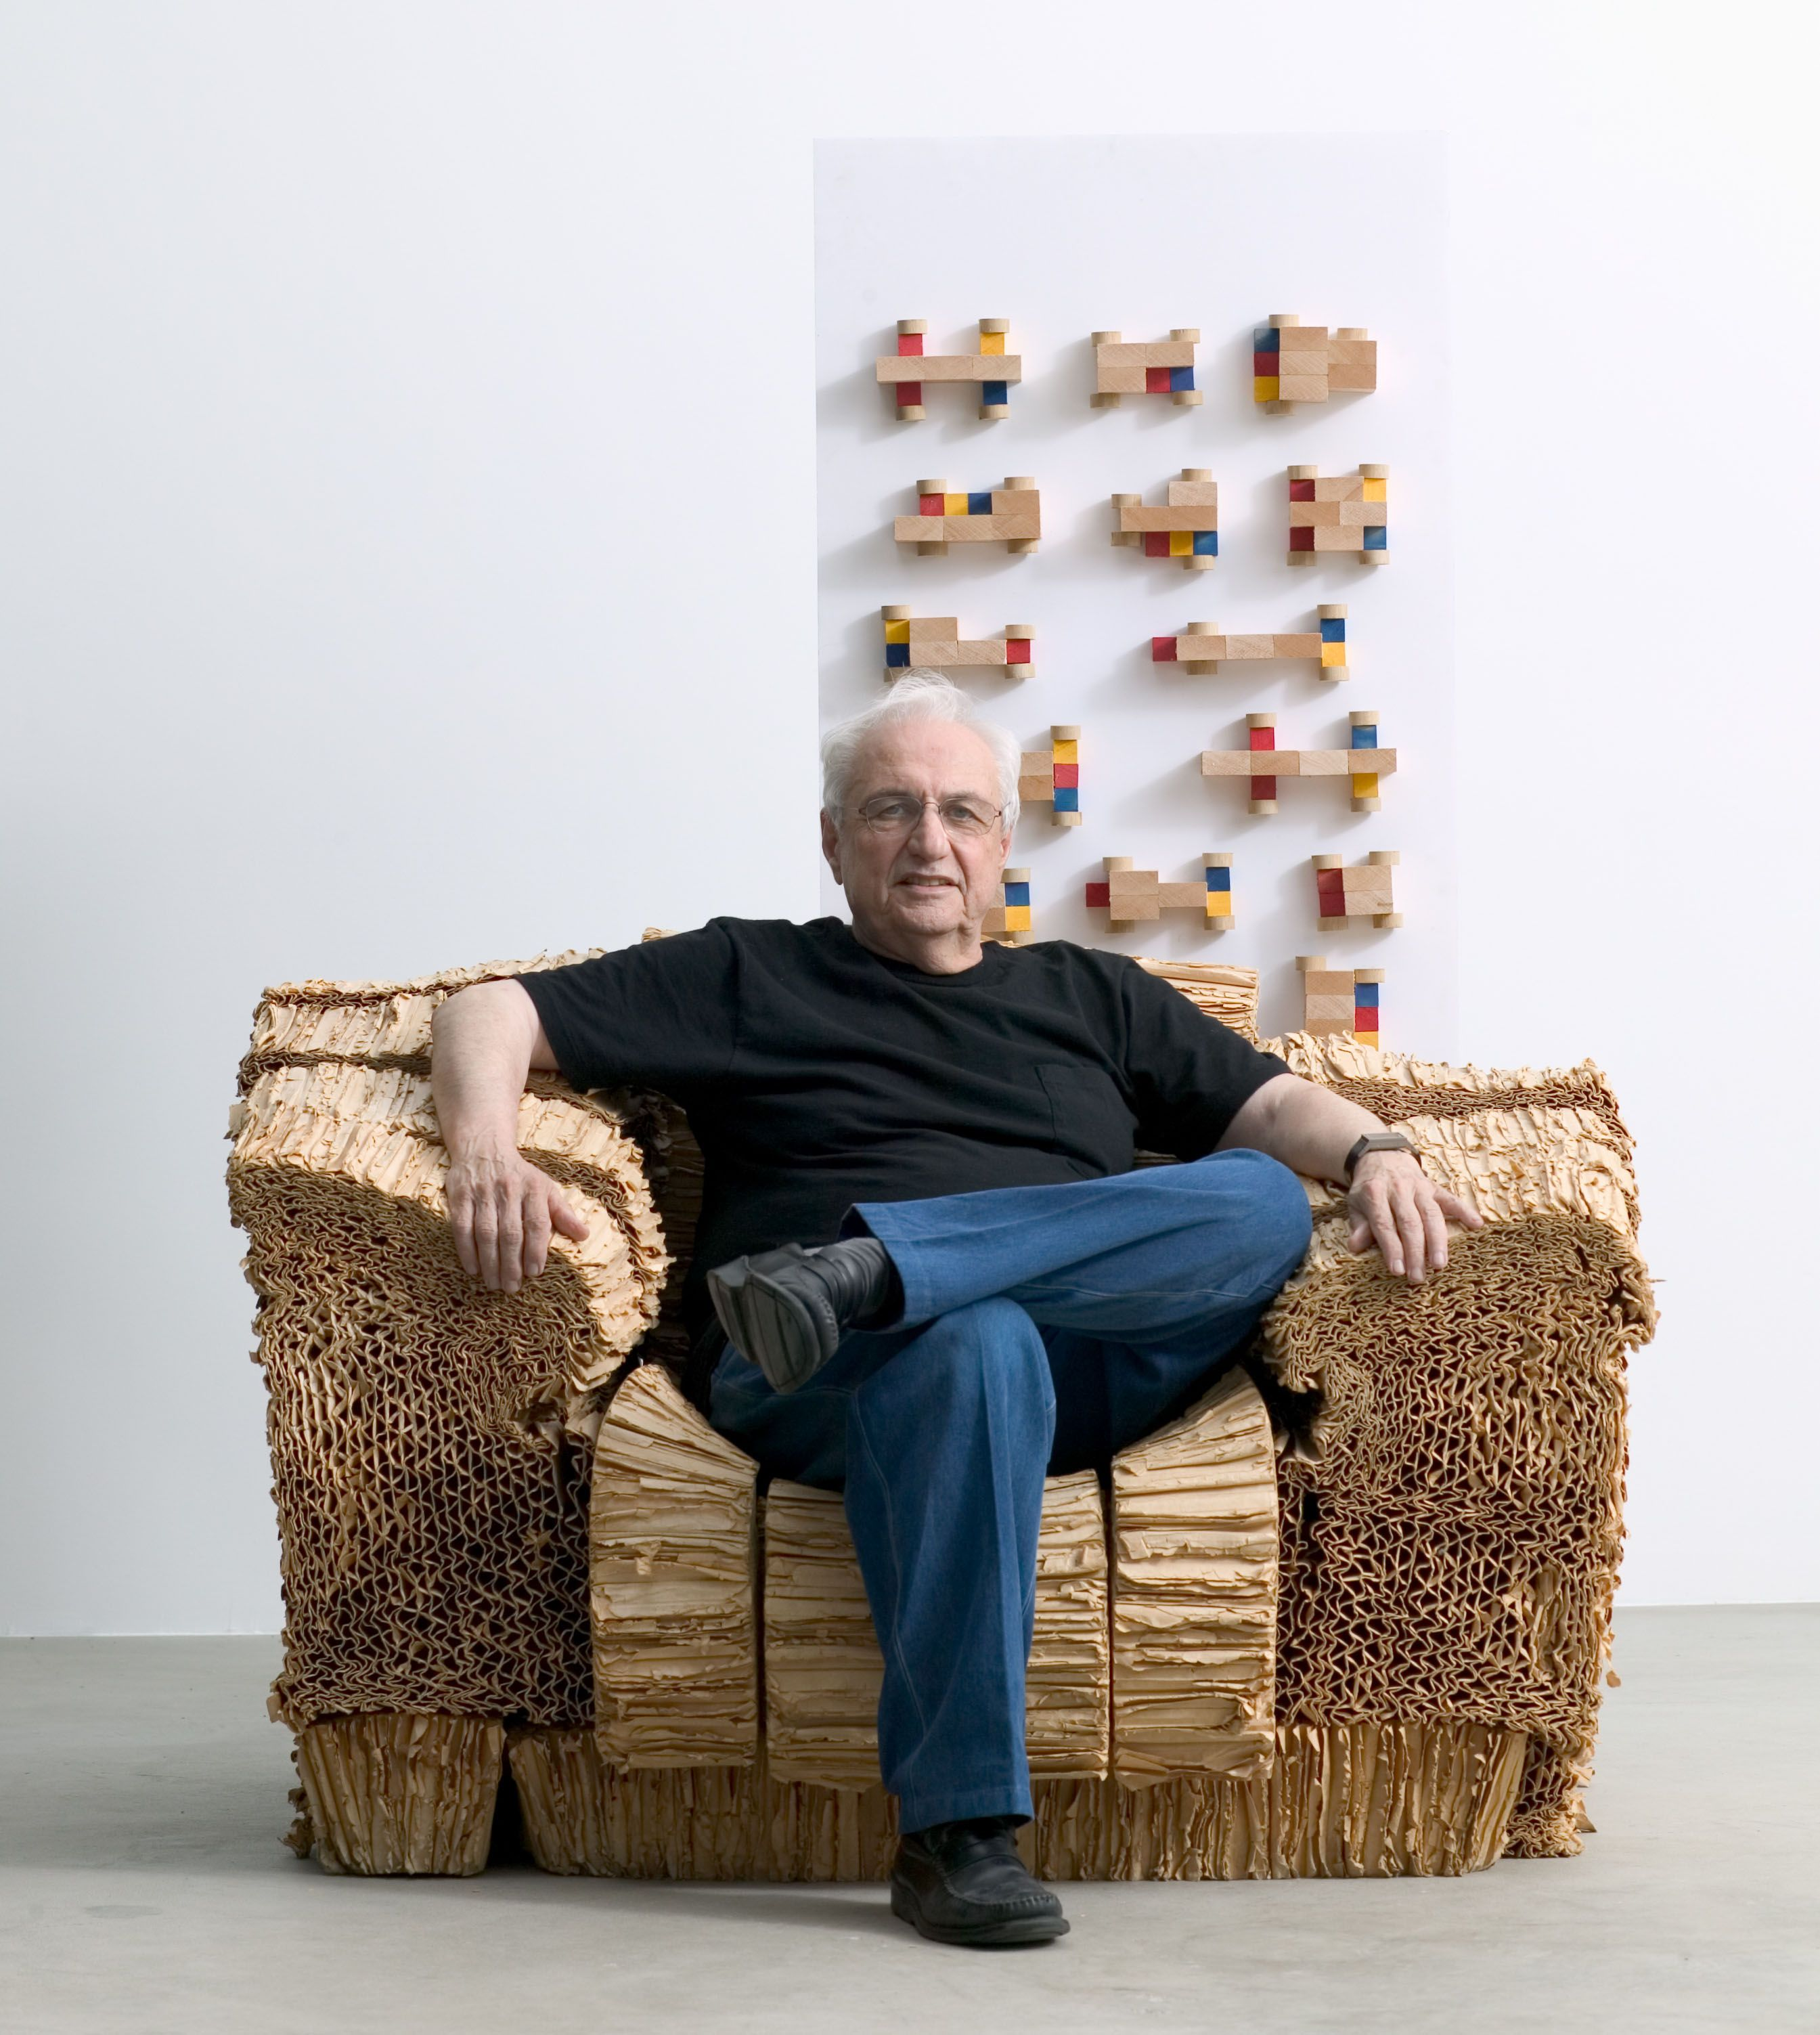 Frank Gehry Google Search Collage Art Pinterest Frank  # Frank Gehry Muebles De Carton